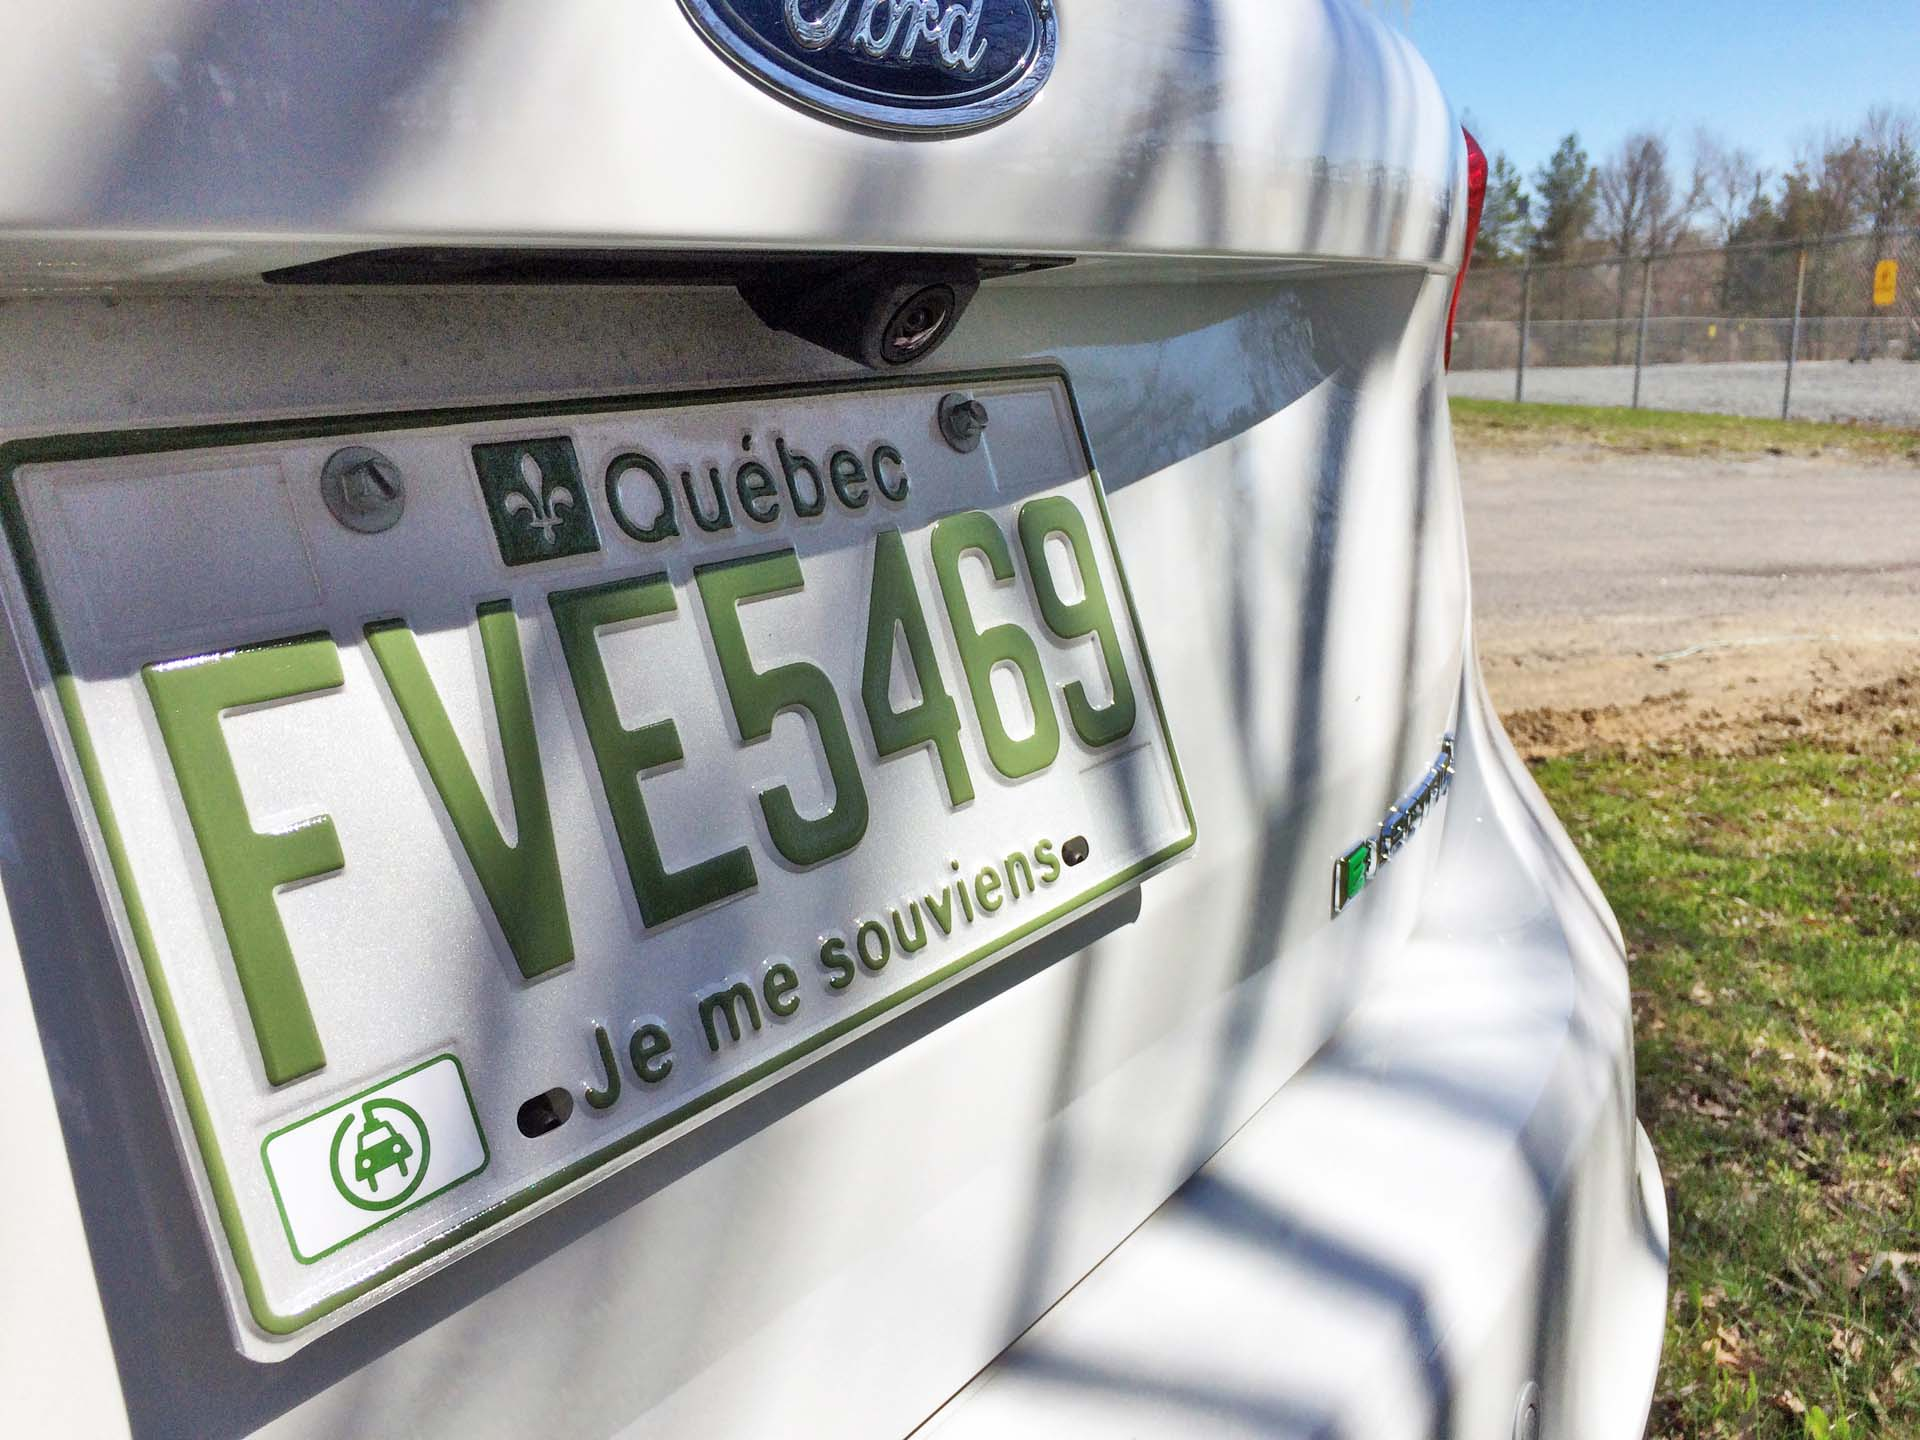 displaying Quebec green license plate